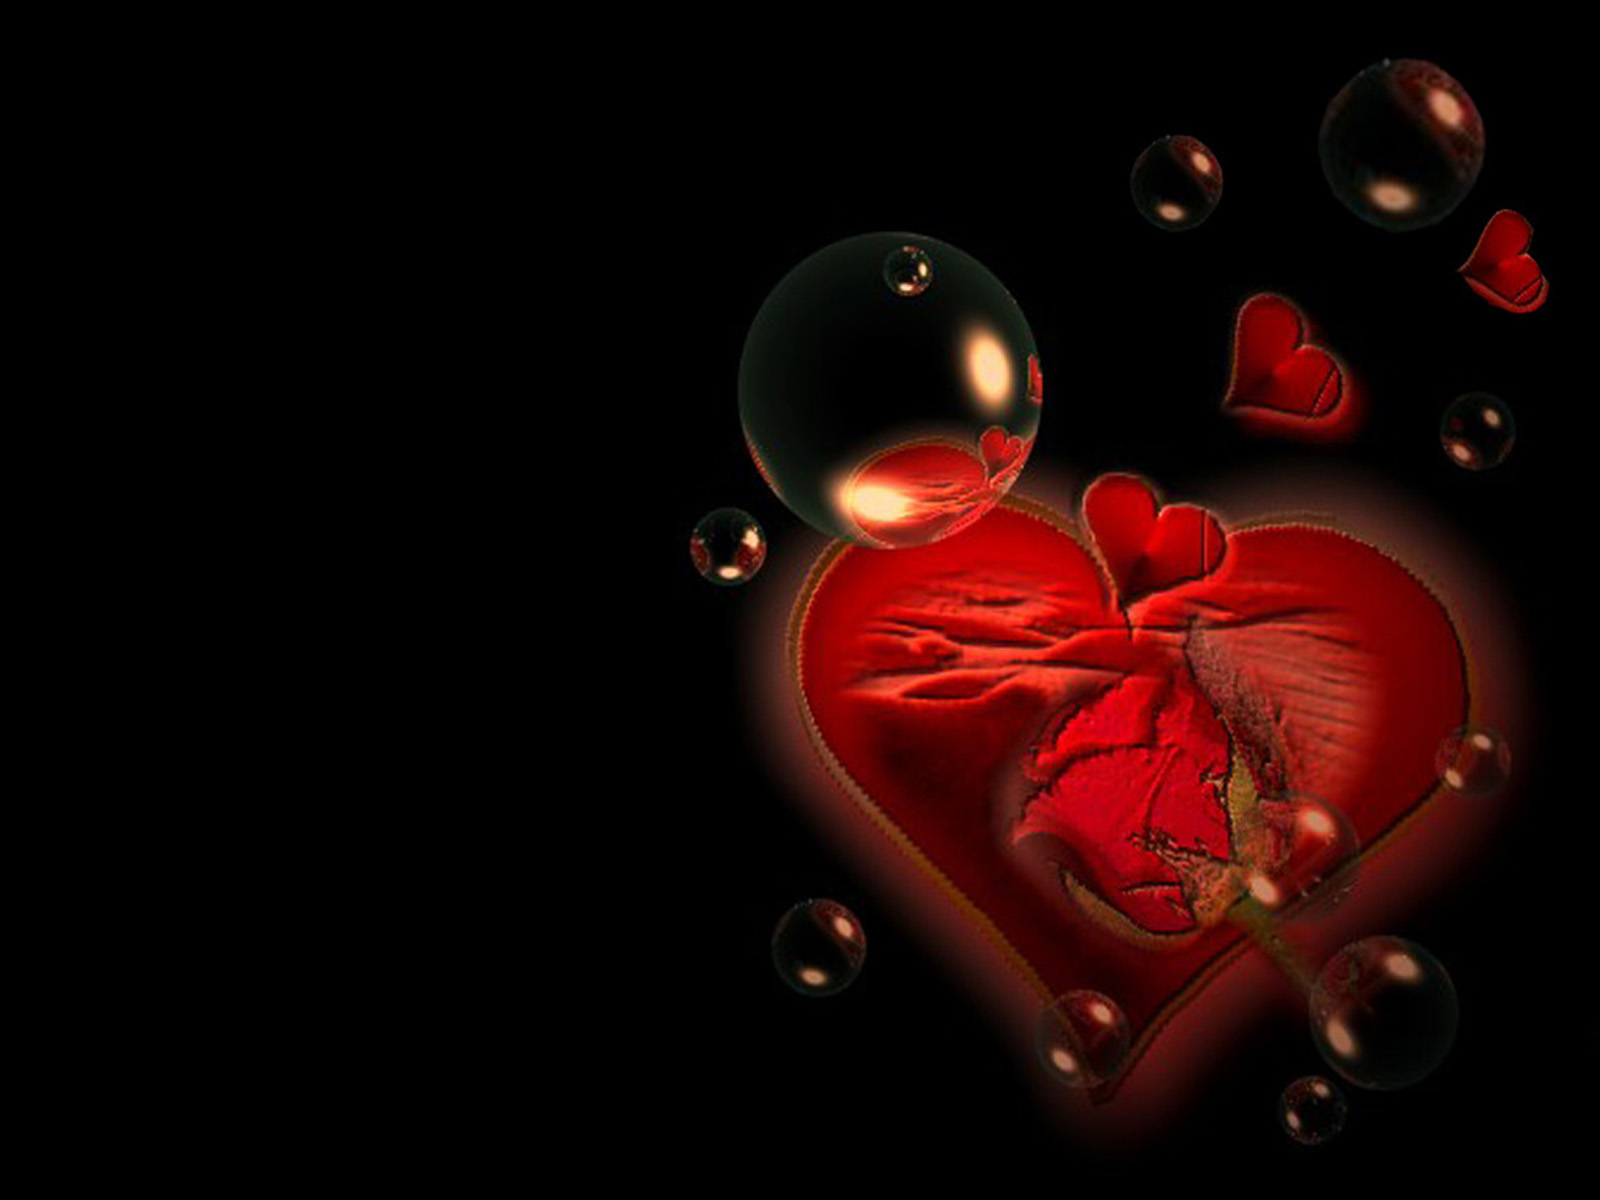 Love 3d Wallpaper: HD Wallpapers: 3D Love Pictures And Wallpapers